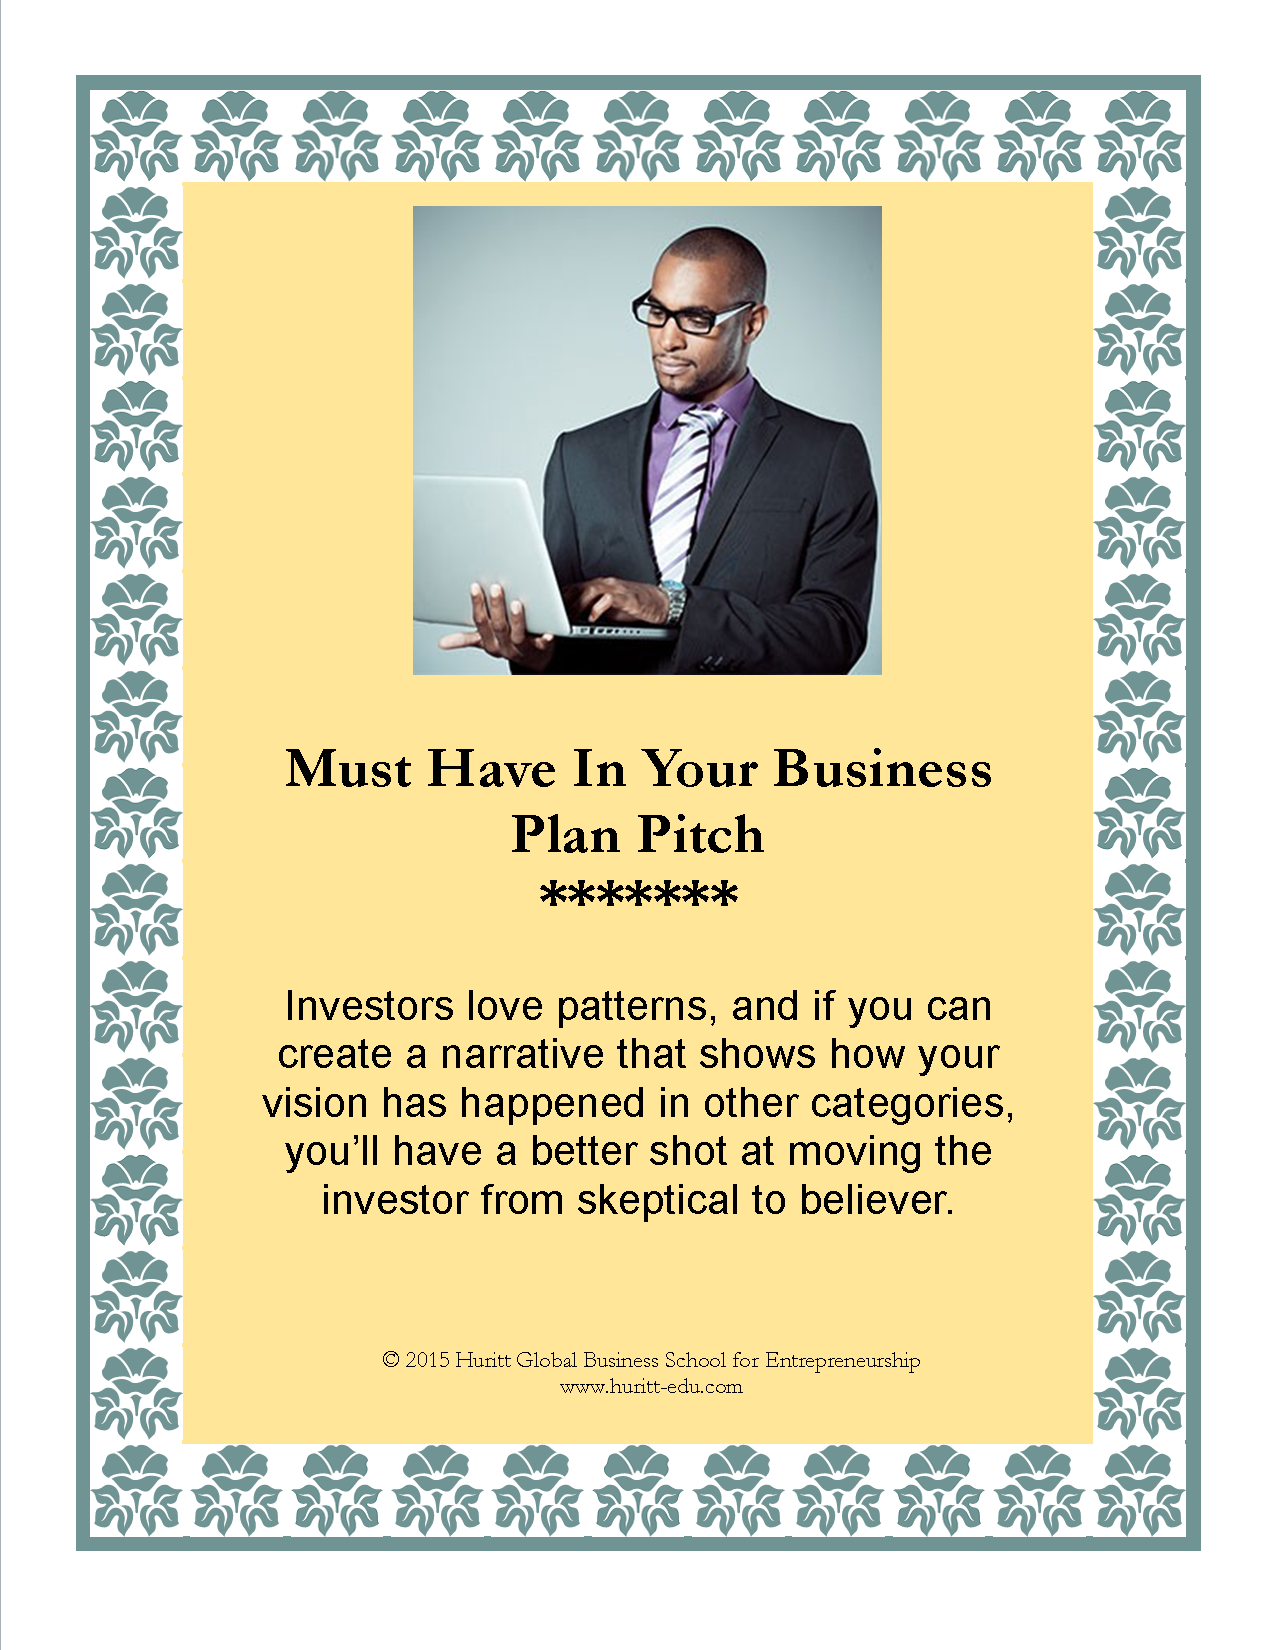 how to write a pitch for a business idea